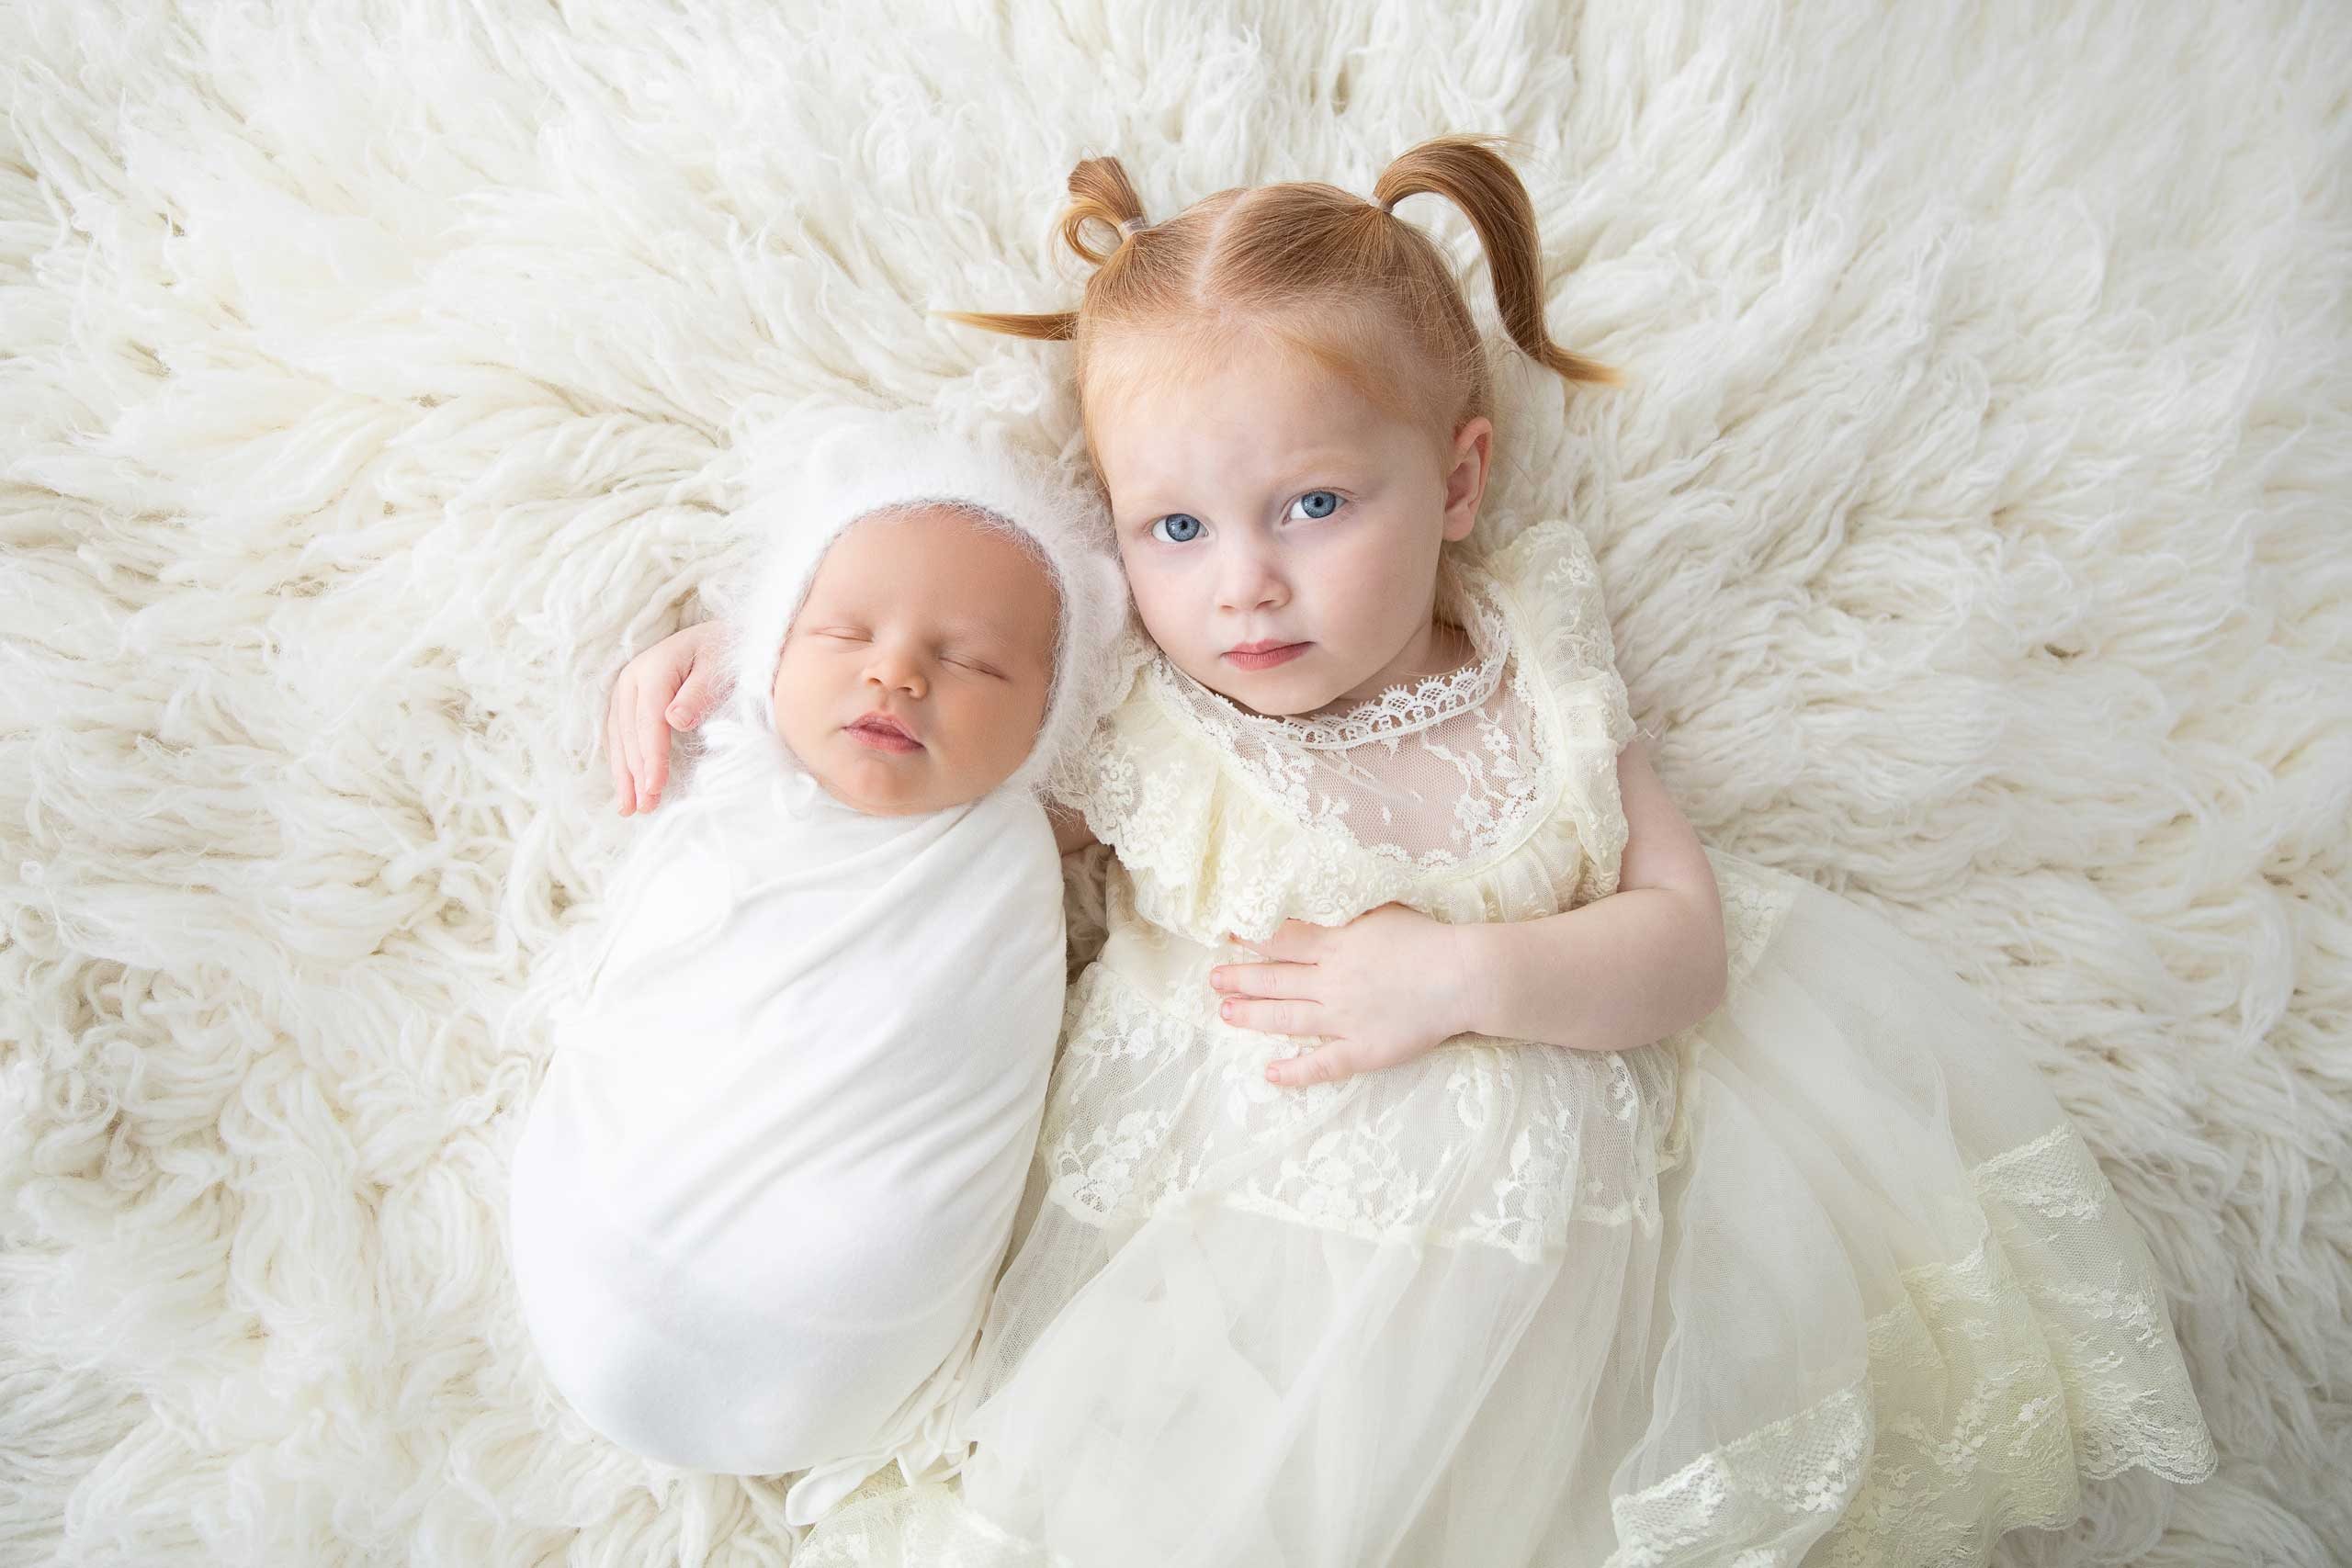 baby newborn and sister photograph taken in Los Angeles by Ramina Magid Photography